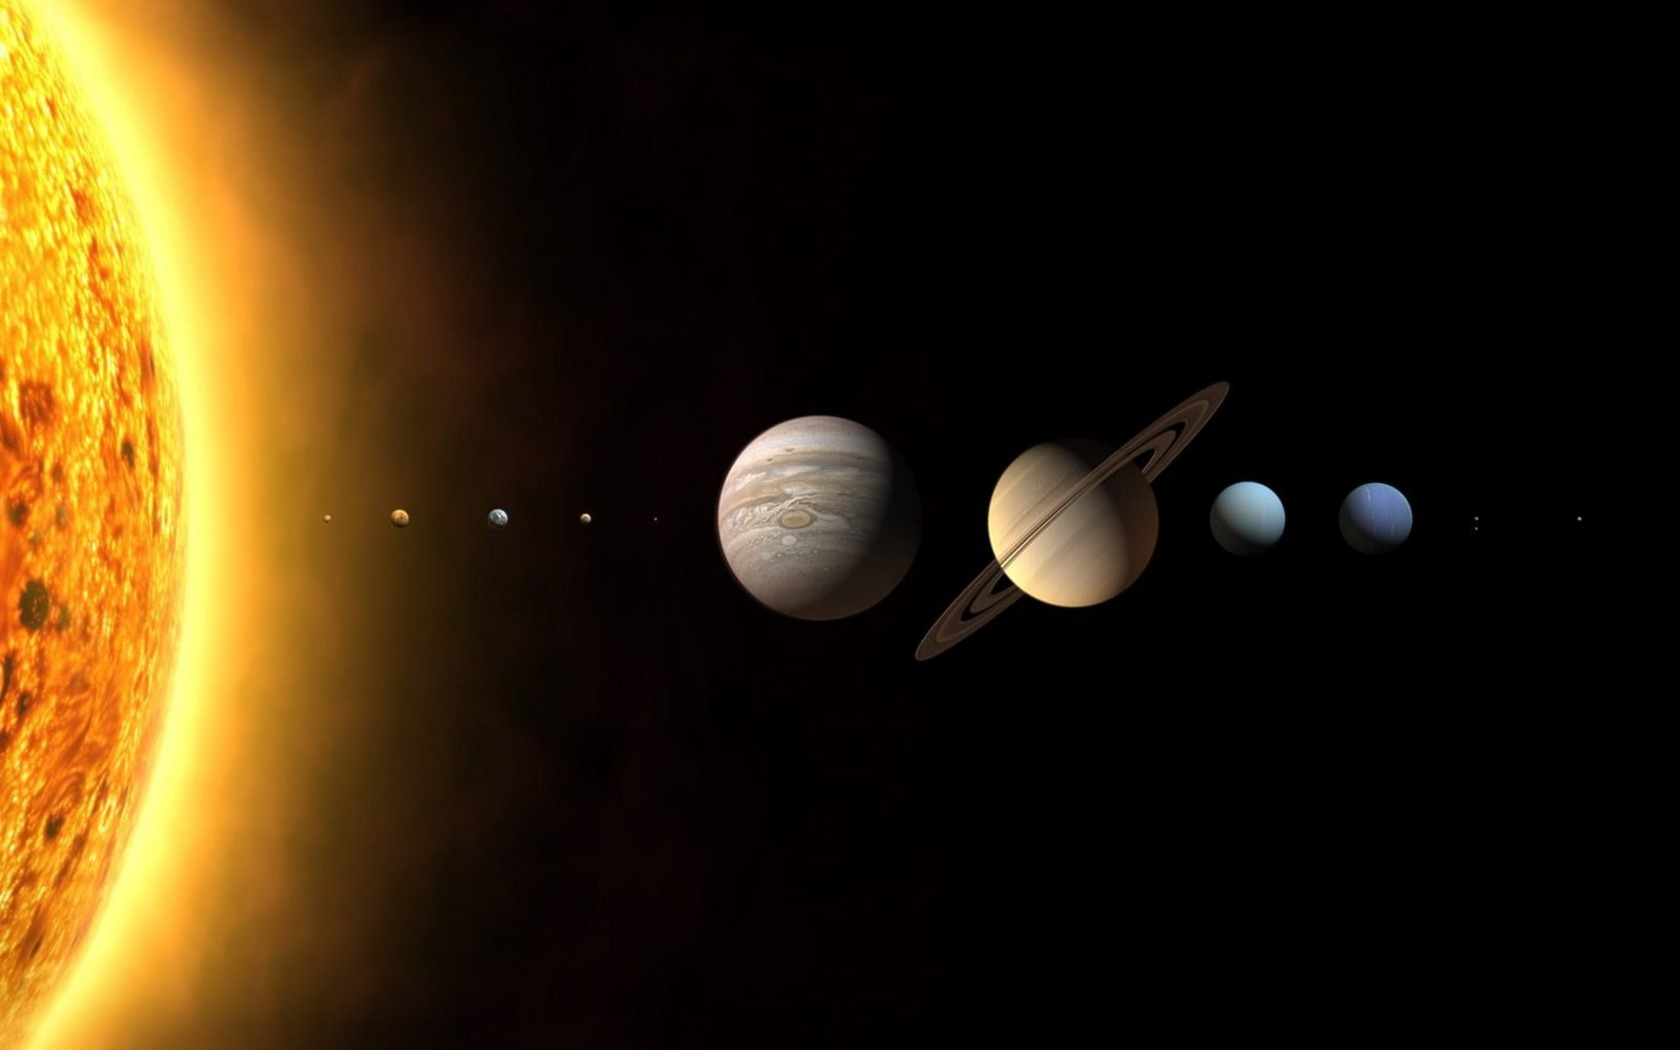 original wallpaper download: Solar System Planets - 1680x1050